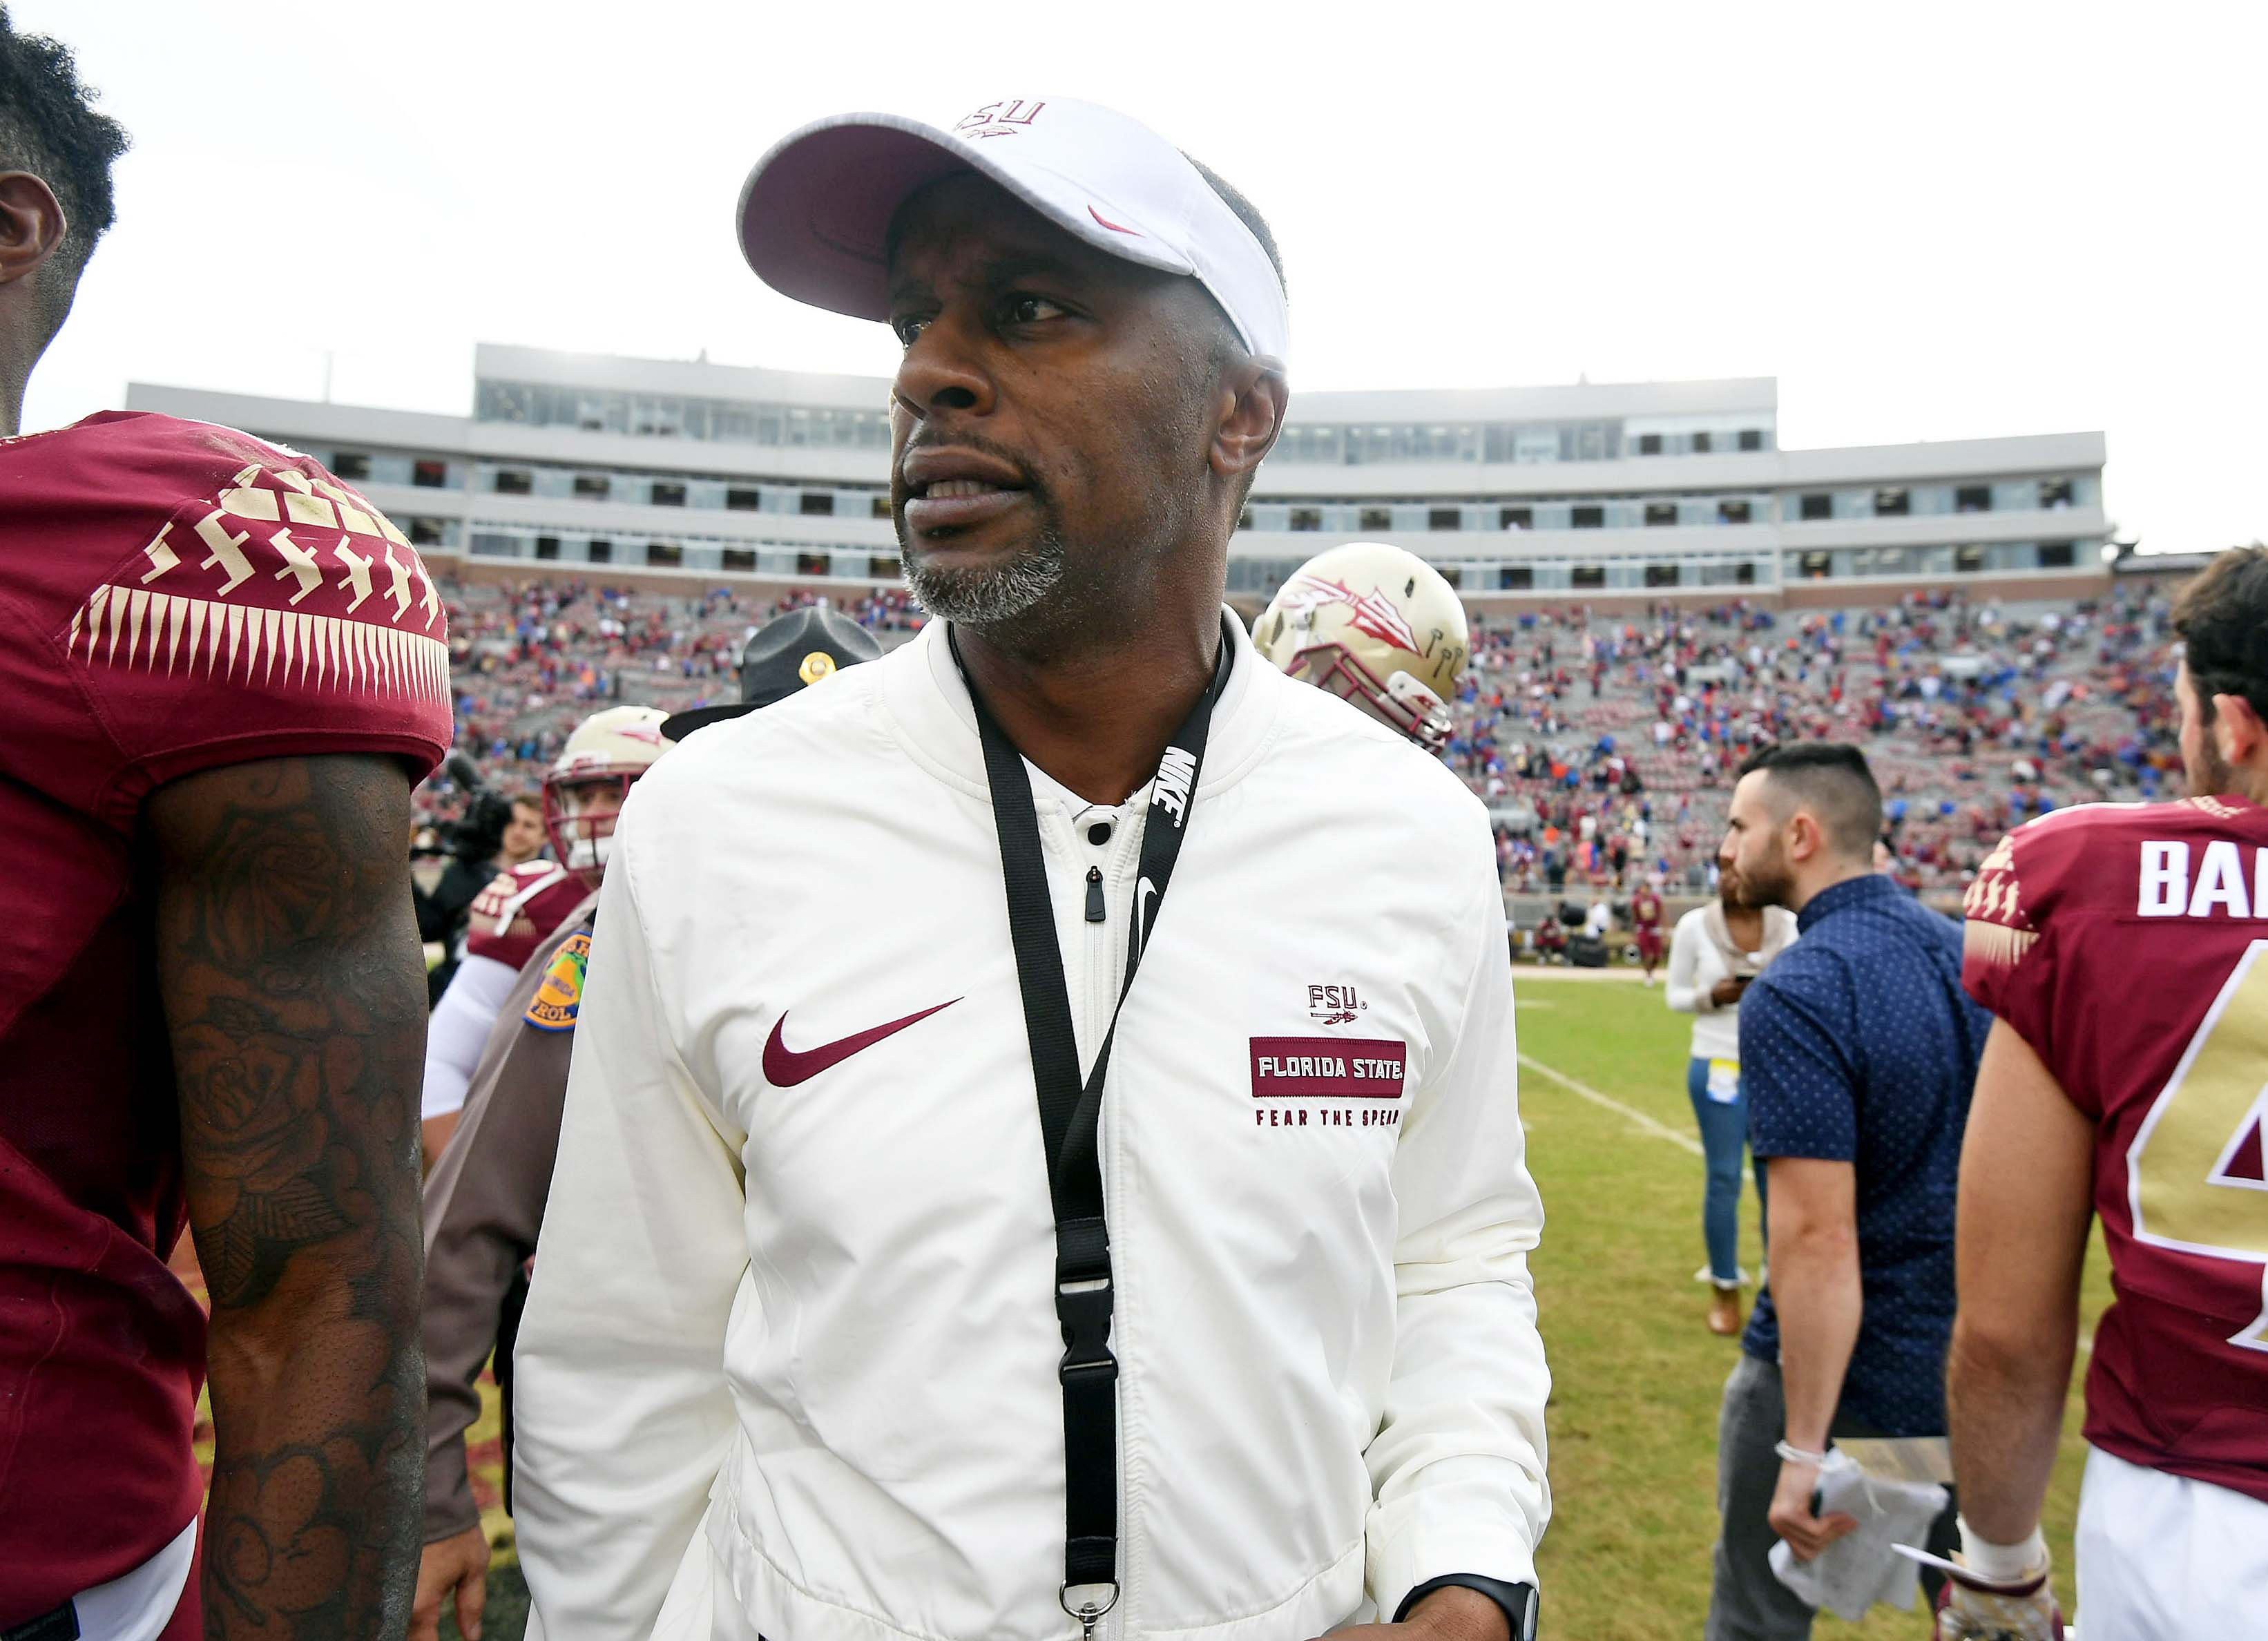 How does Florida State respond to its first losing season since 1976?